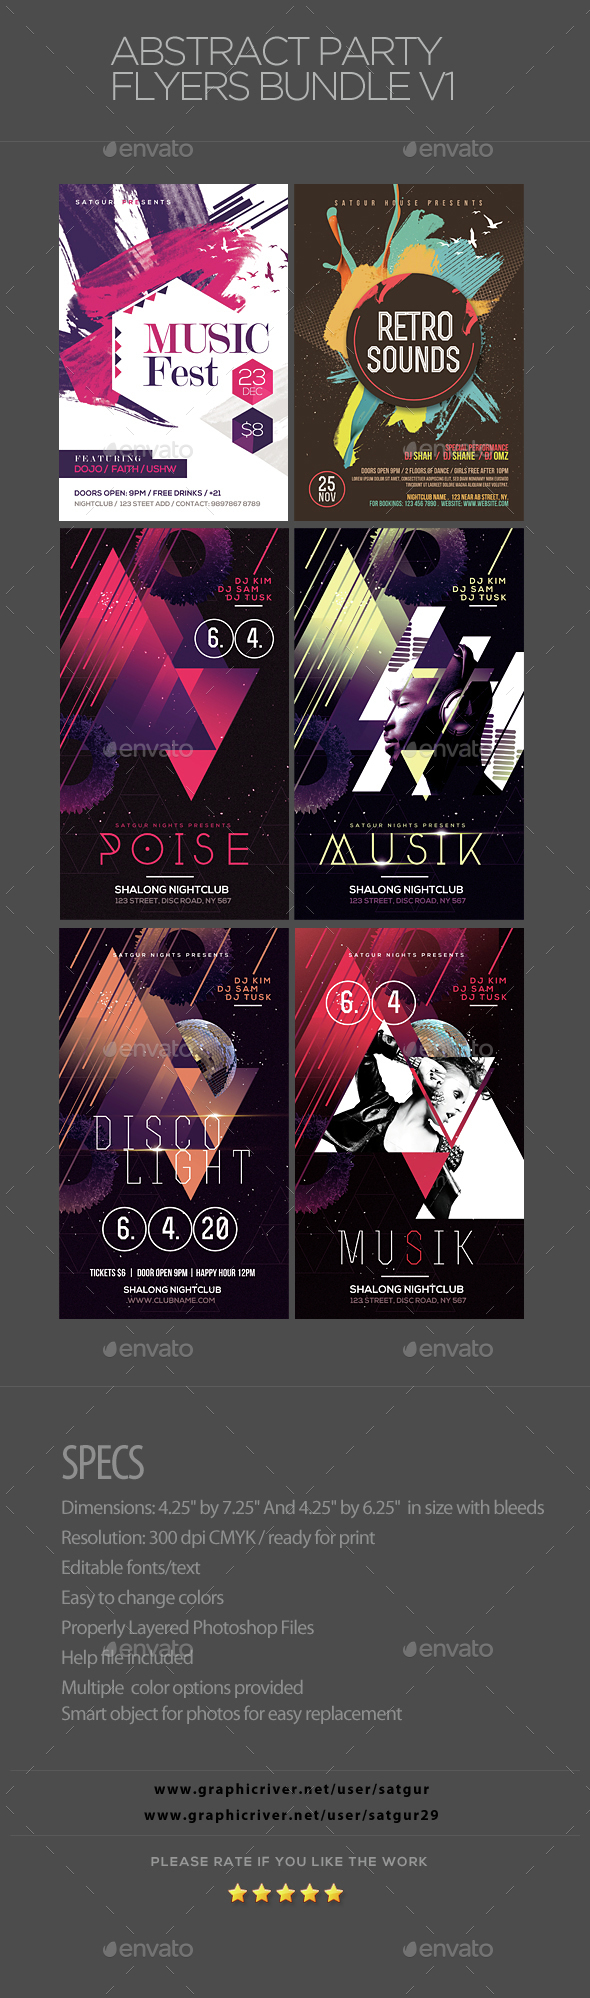 Abstract Party Flyers Bundle Vol1 - Clubs & Parties Events